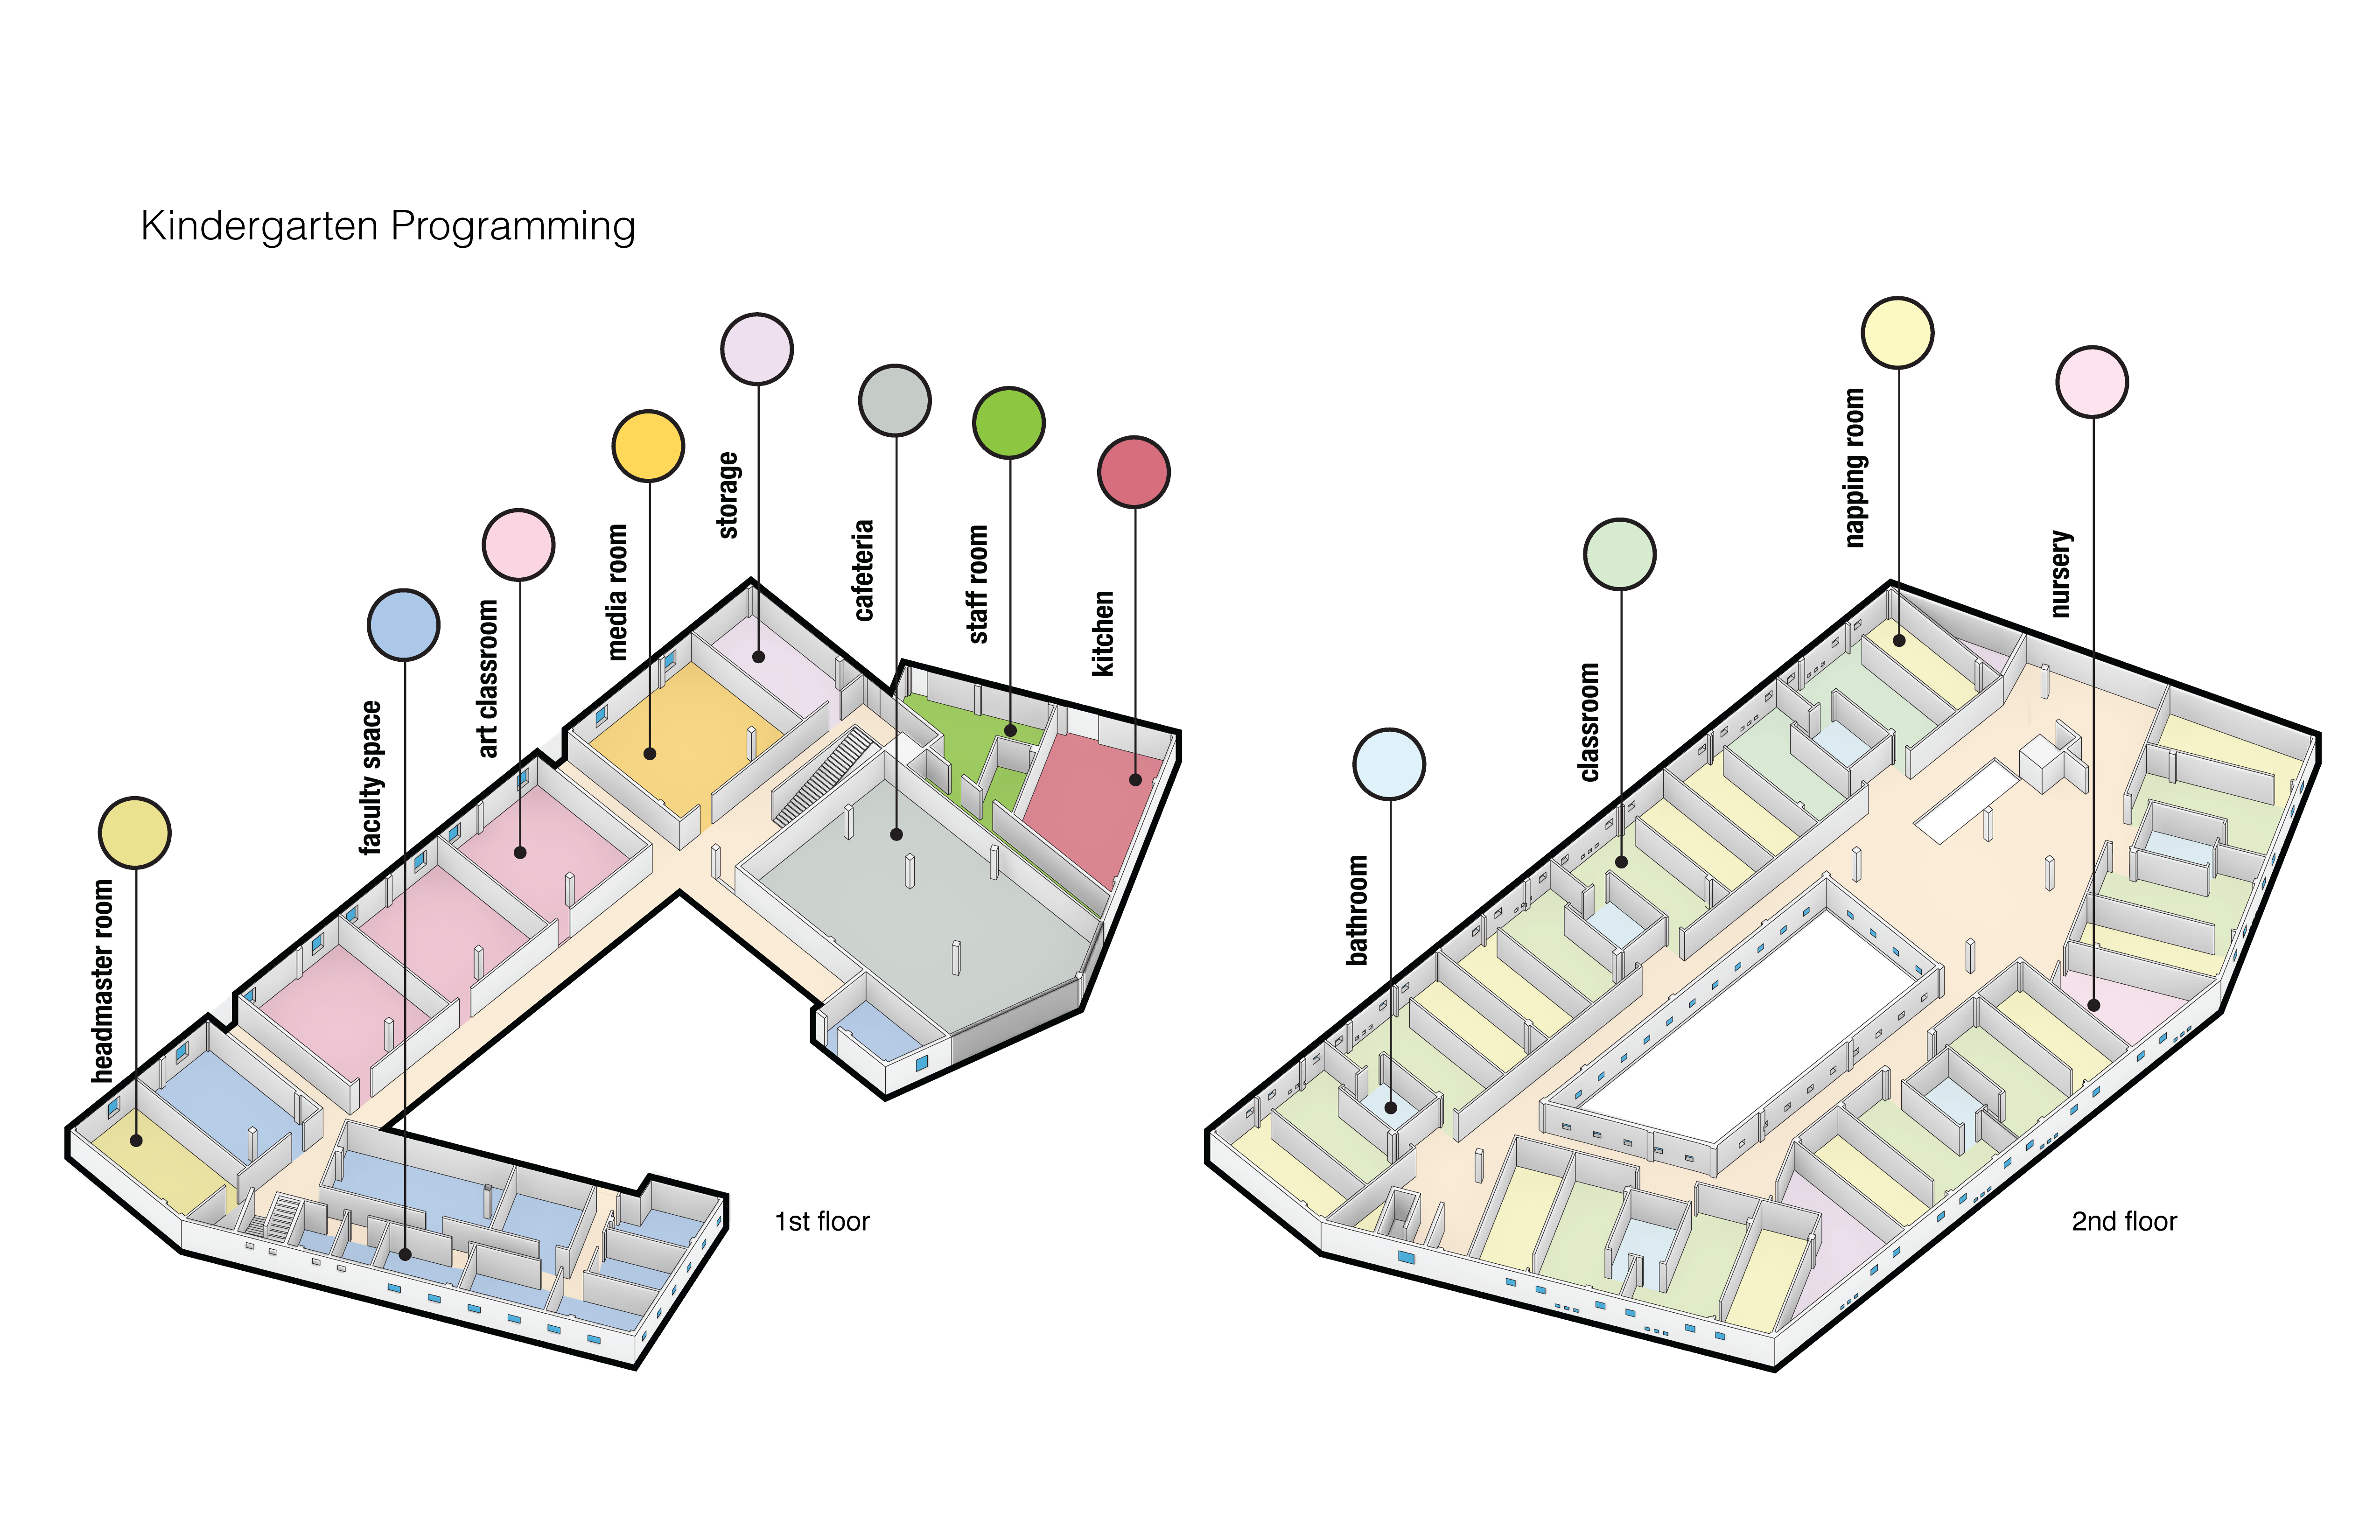 City Of Kids Design Kindergarten